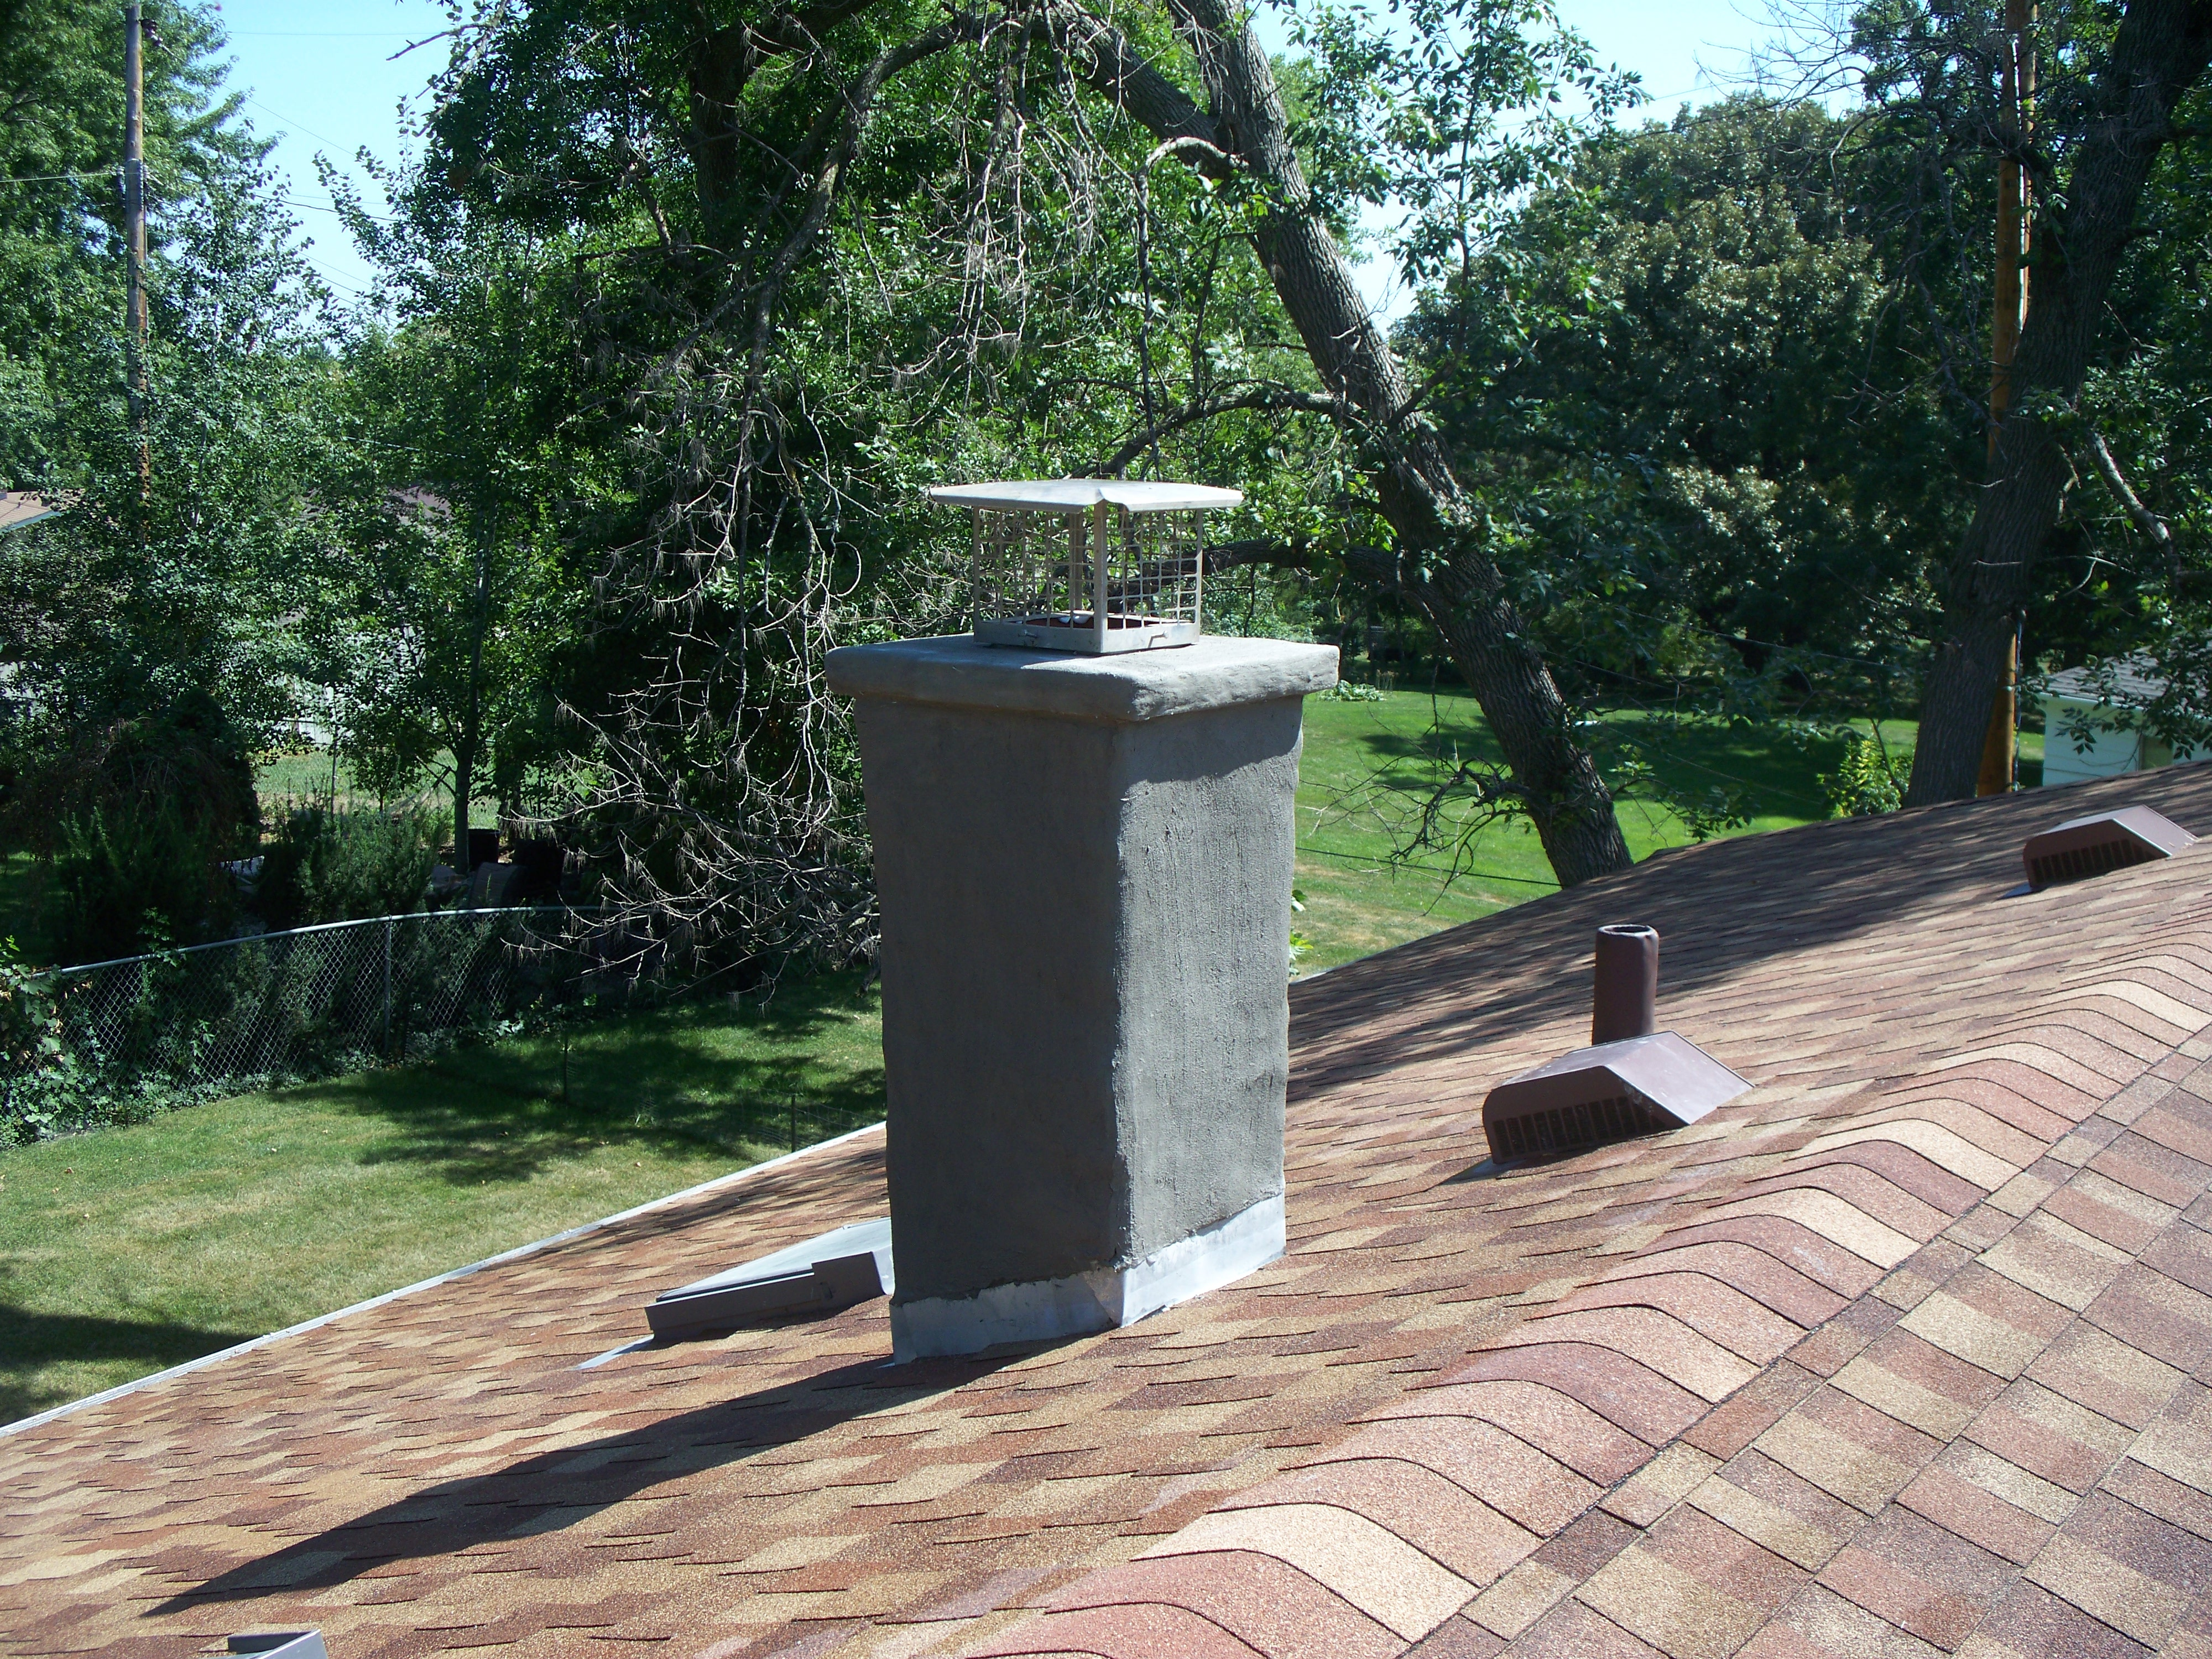 Iowa Chimney Cleaning Services Des Moines Chimney Sweep